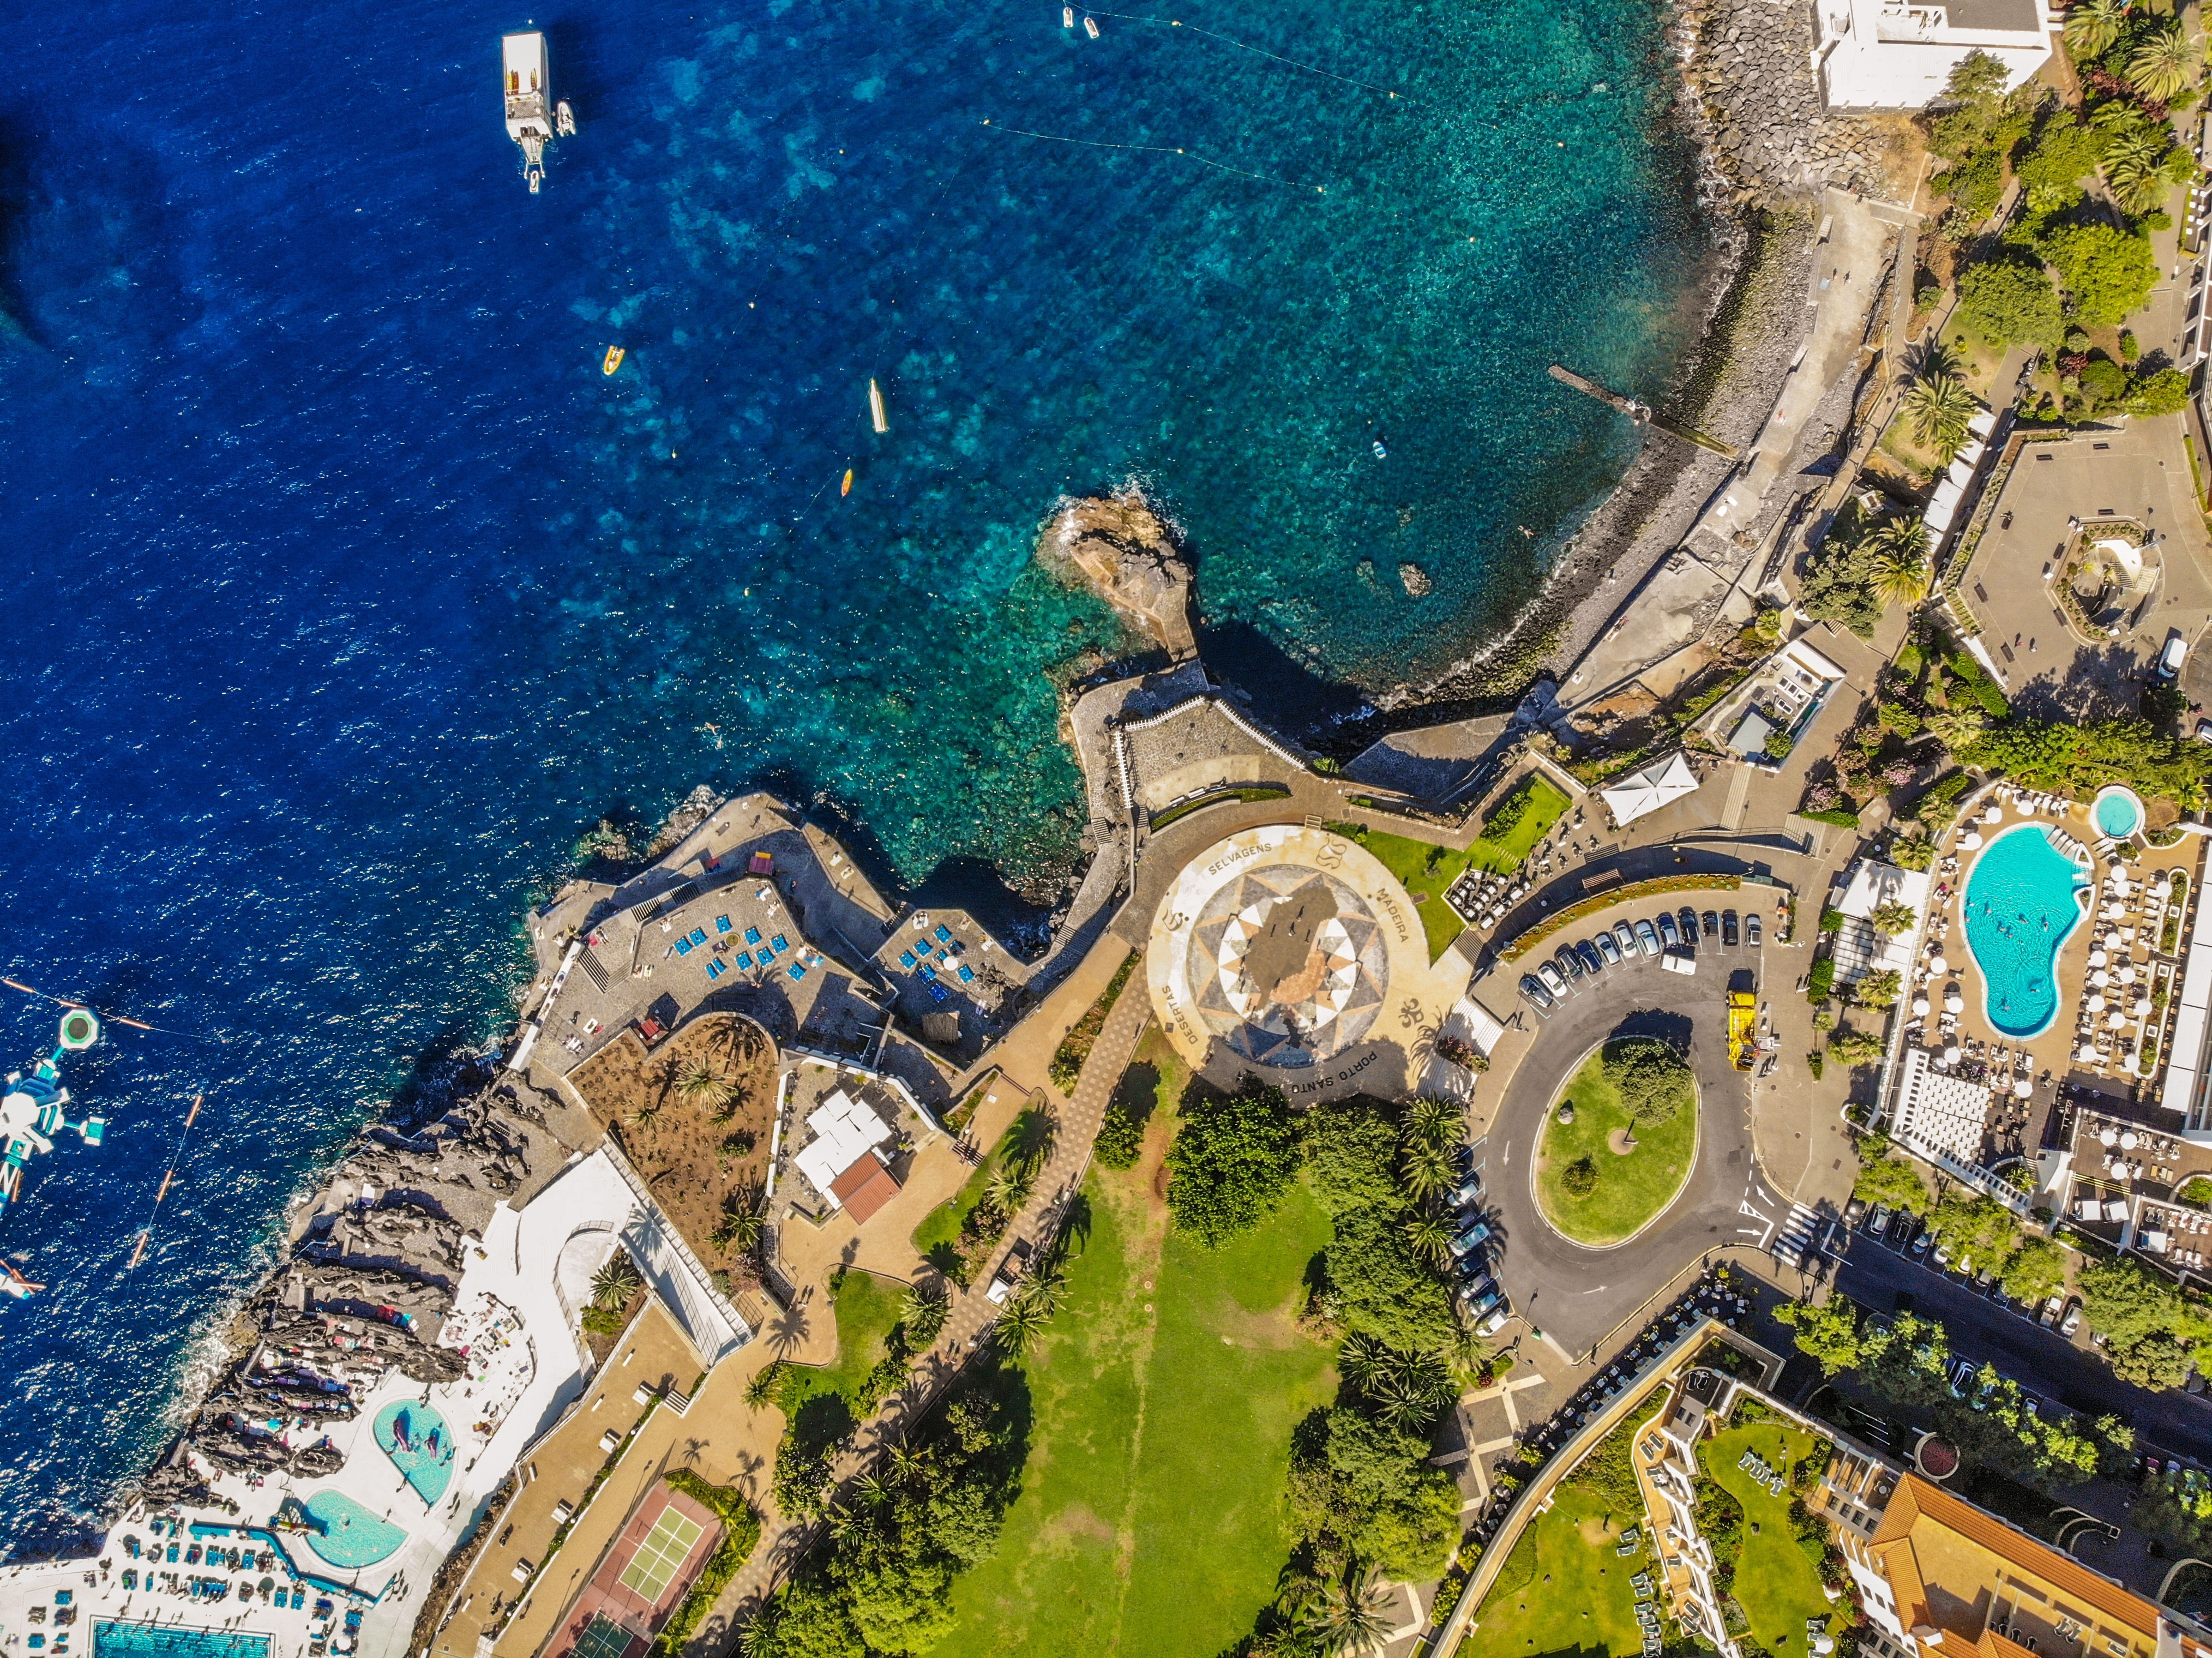 Funchal, Madeira / Photo by Reinaldo Garanito on Unsplash